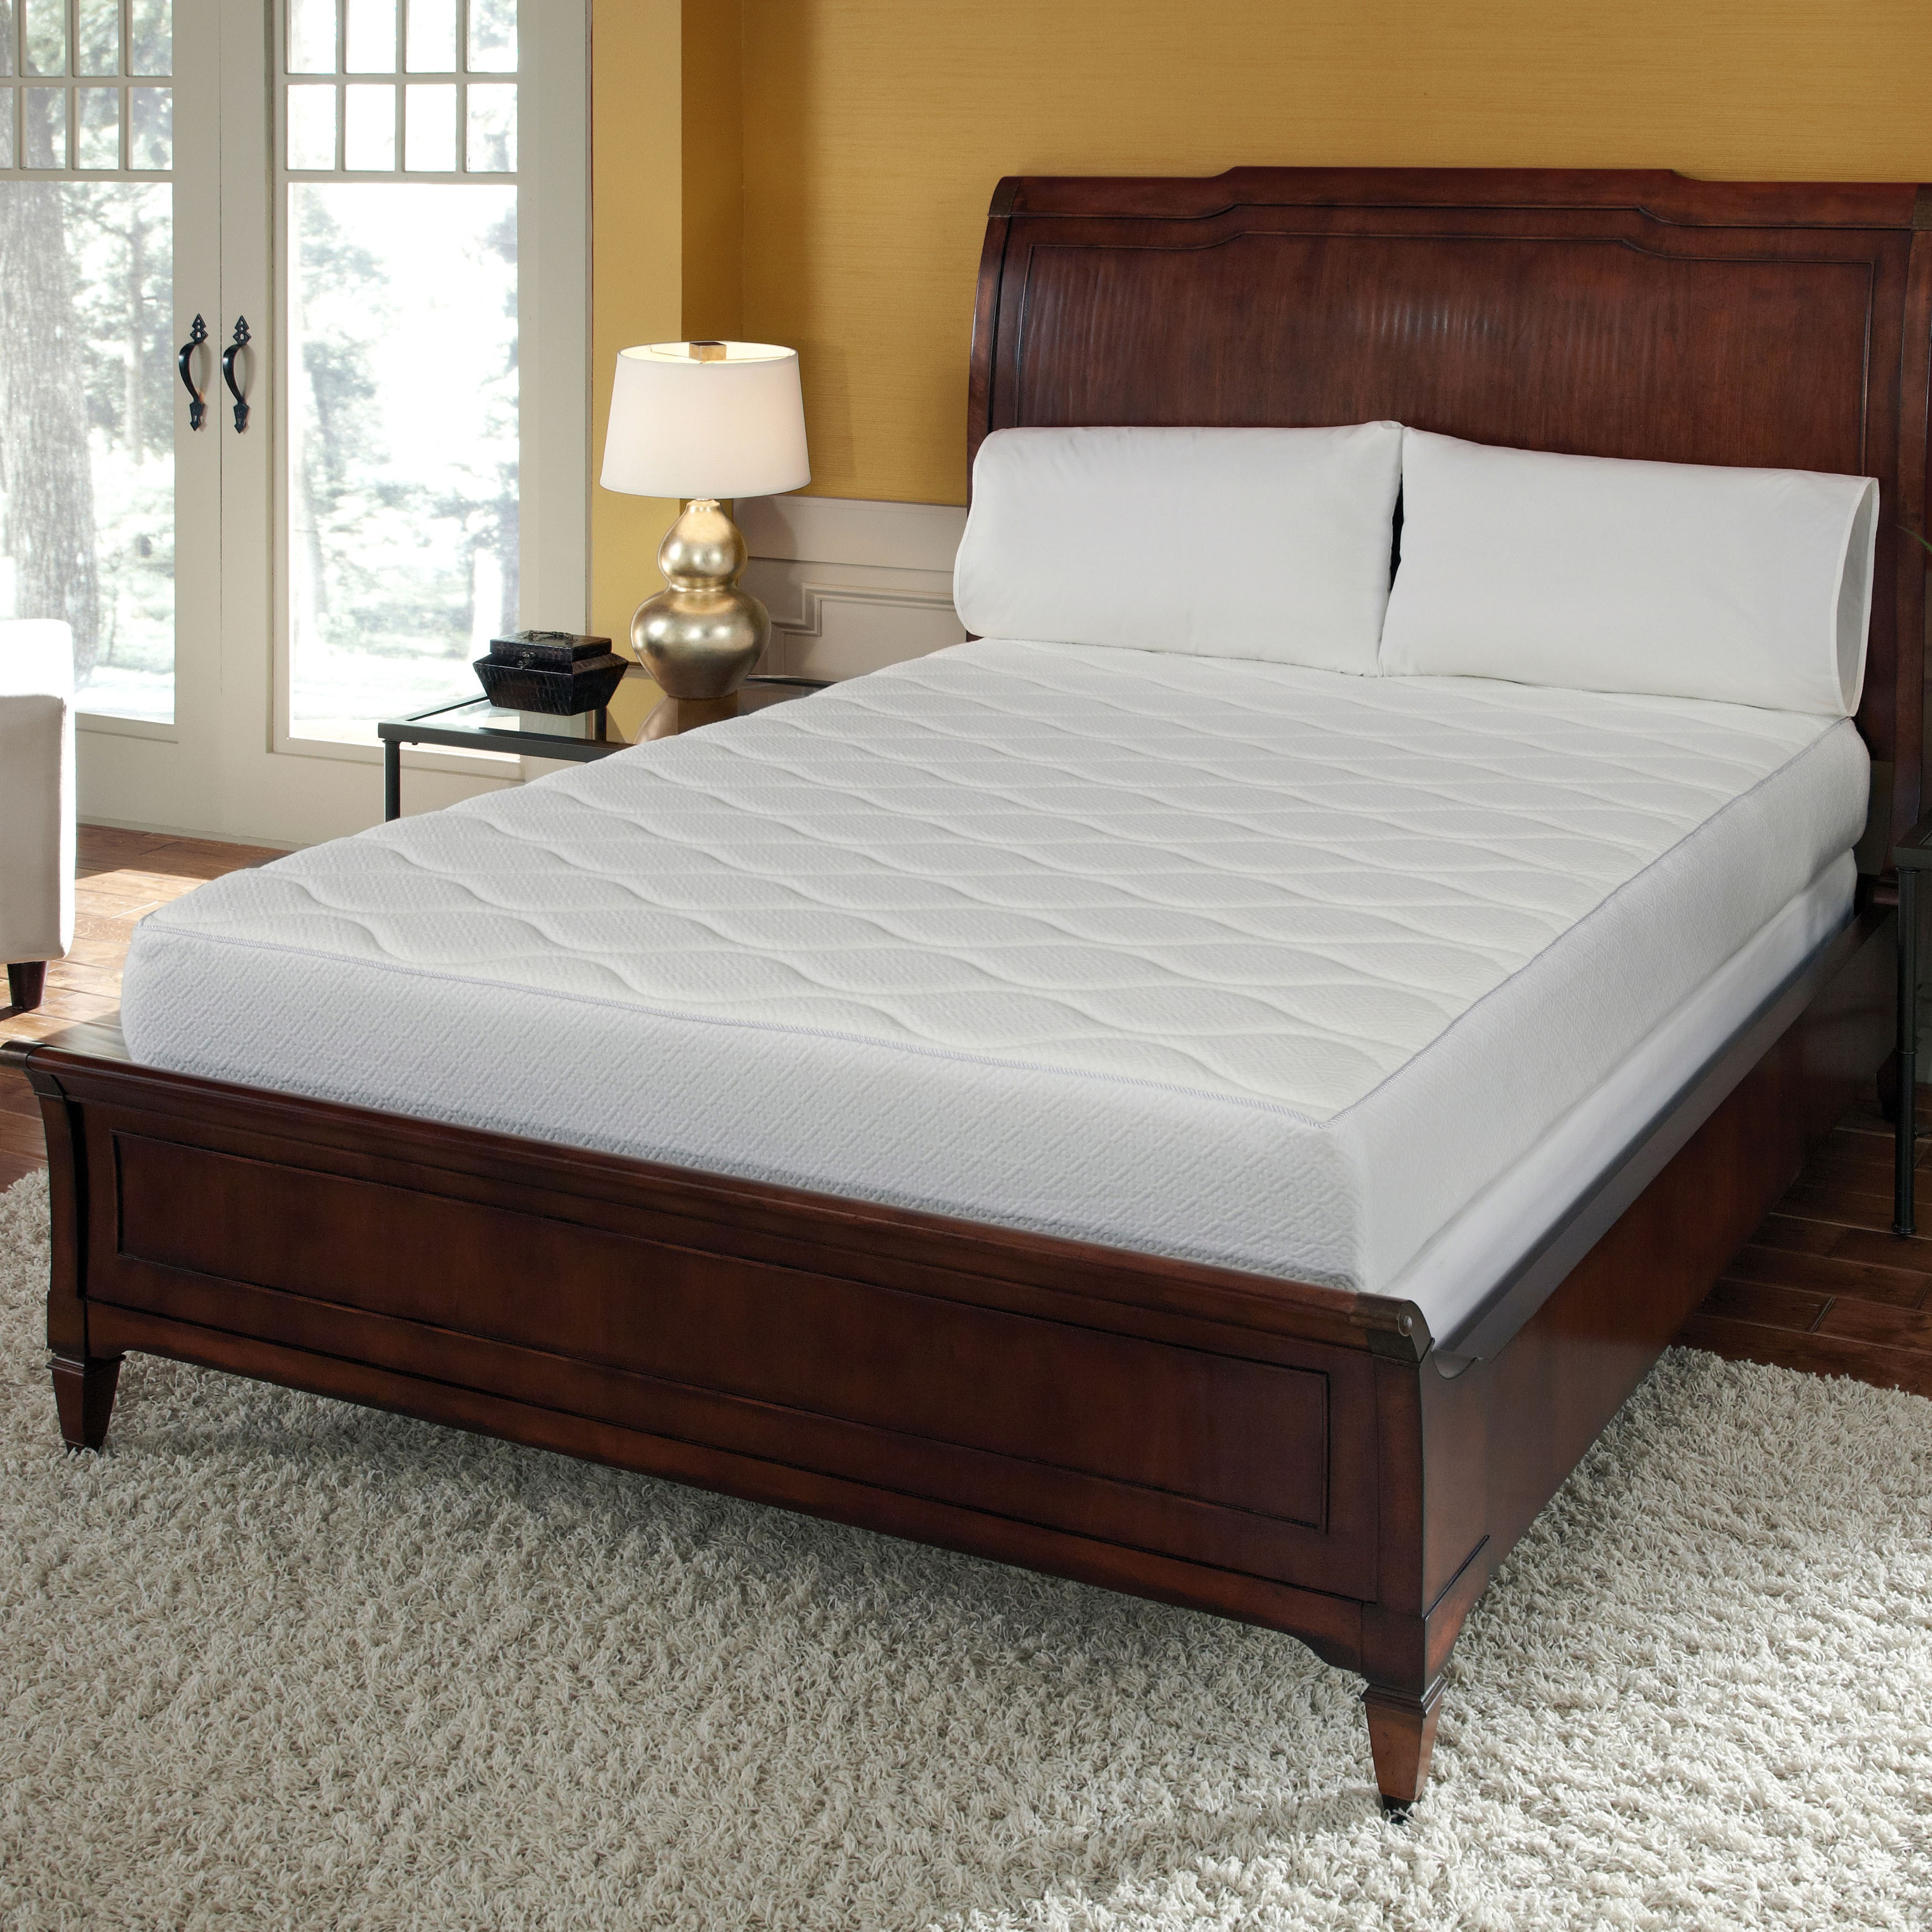 I Love Living Queen 10-inch Memory Foam Mattress with Quilted Top